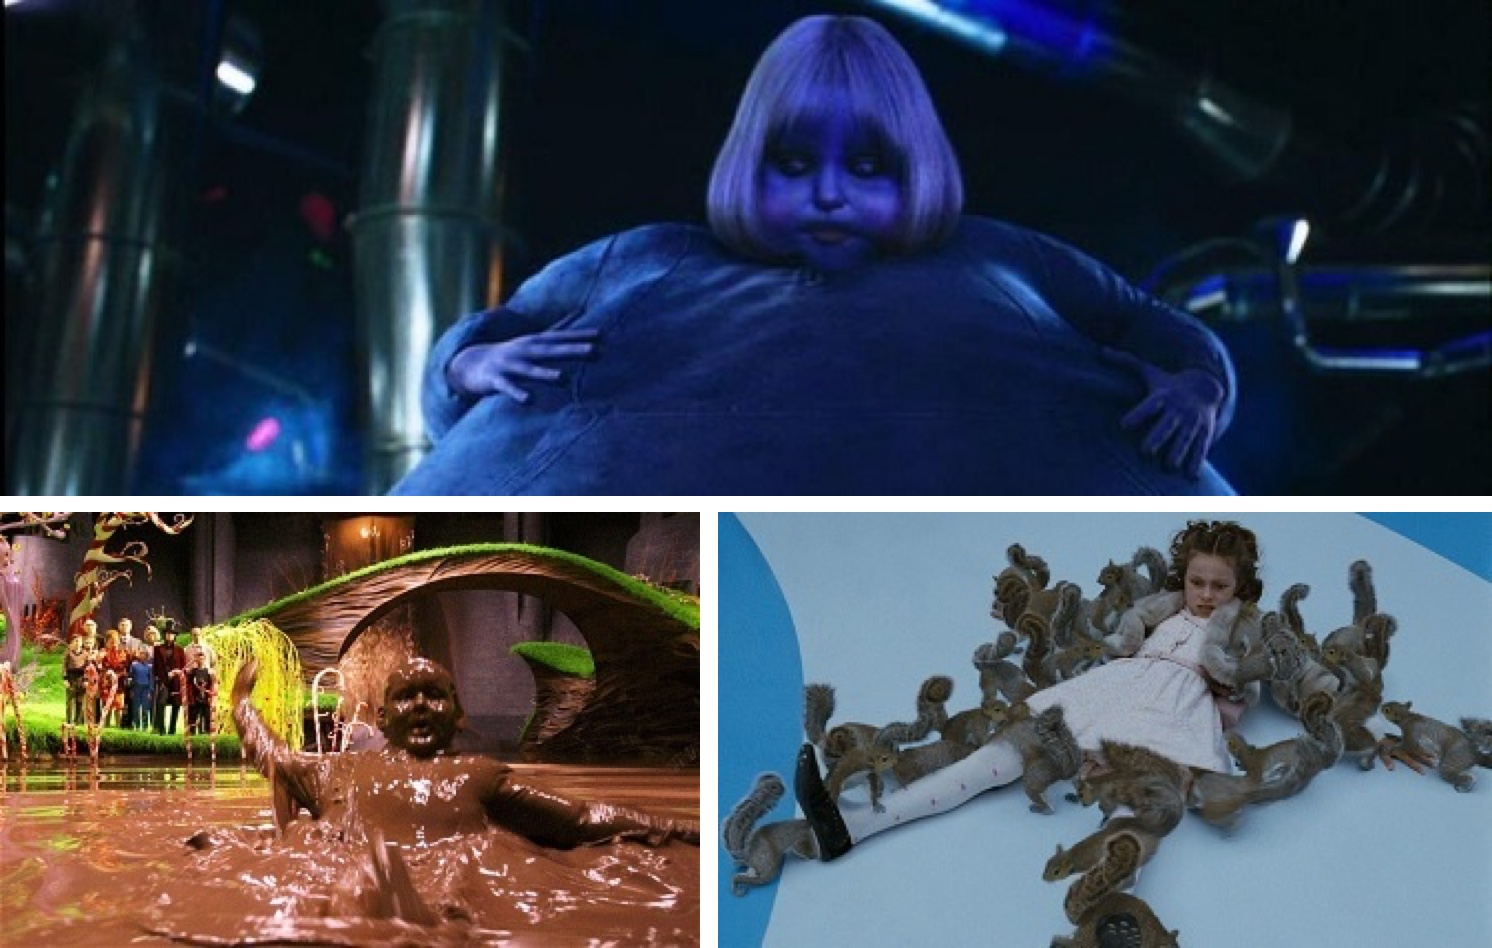 From Tim Burton's version of Charlie and the Chocolate Factory